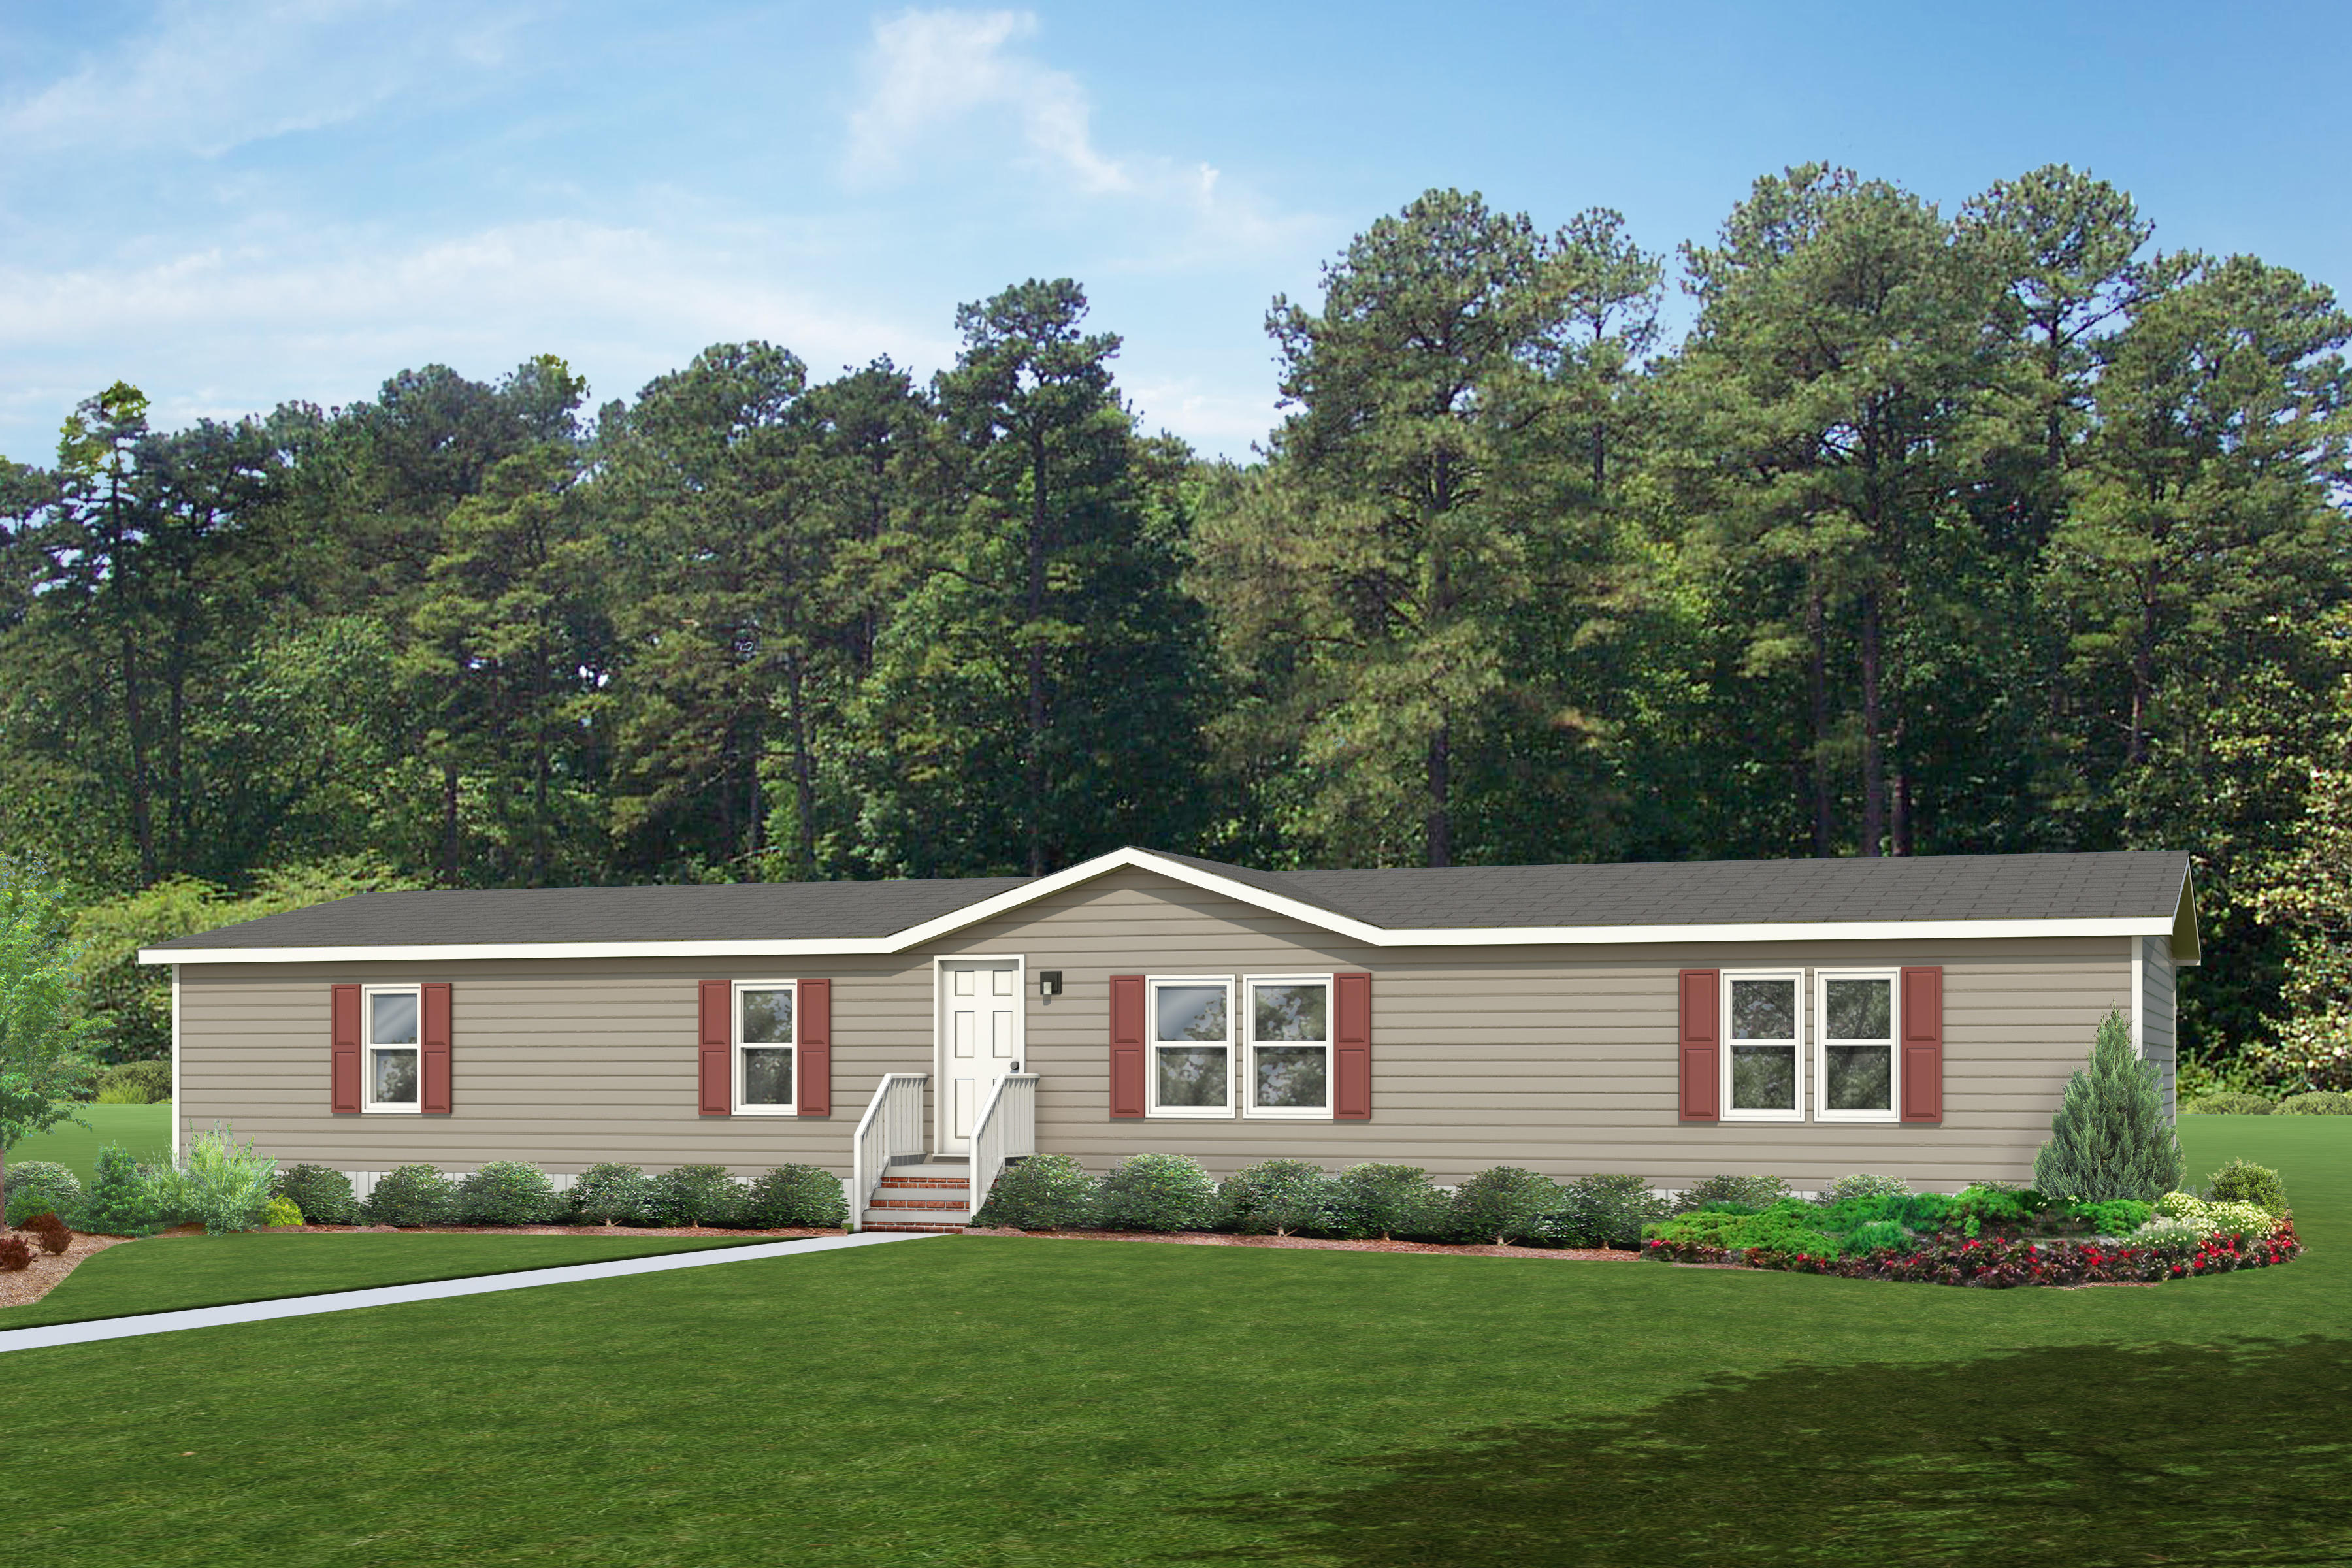 Oakwood homes in barboursville wv 25504 for Home builders in wv